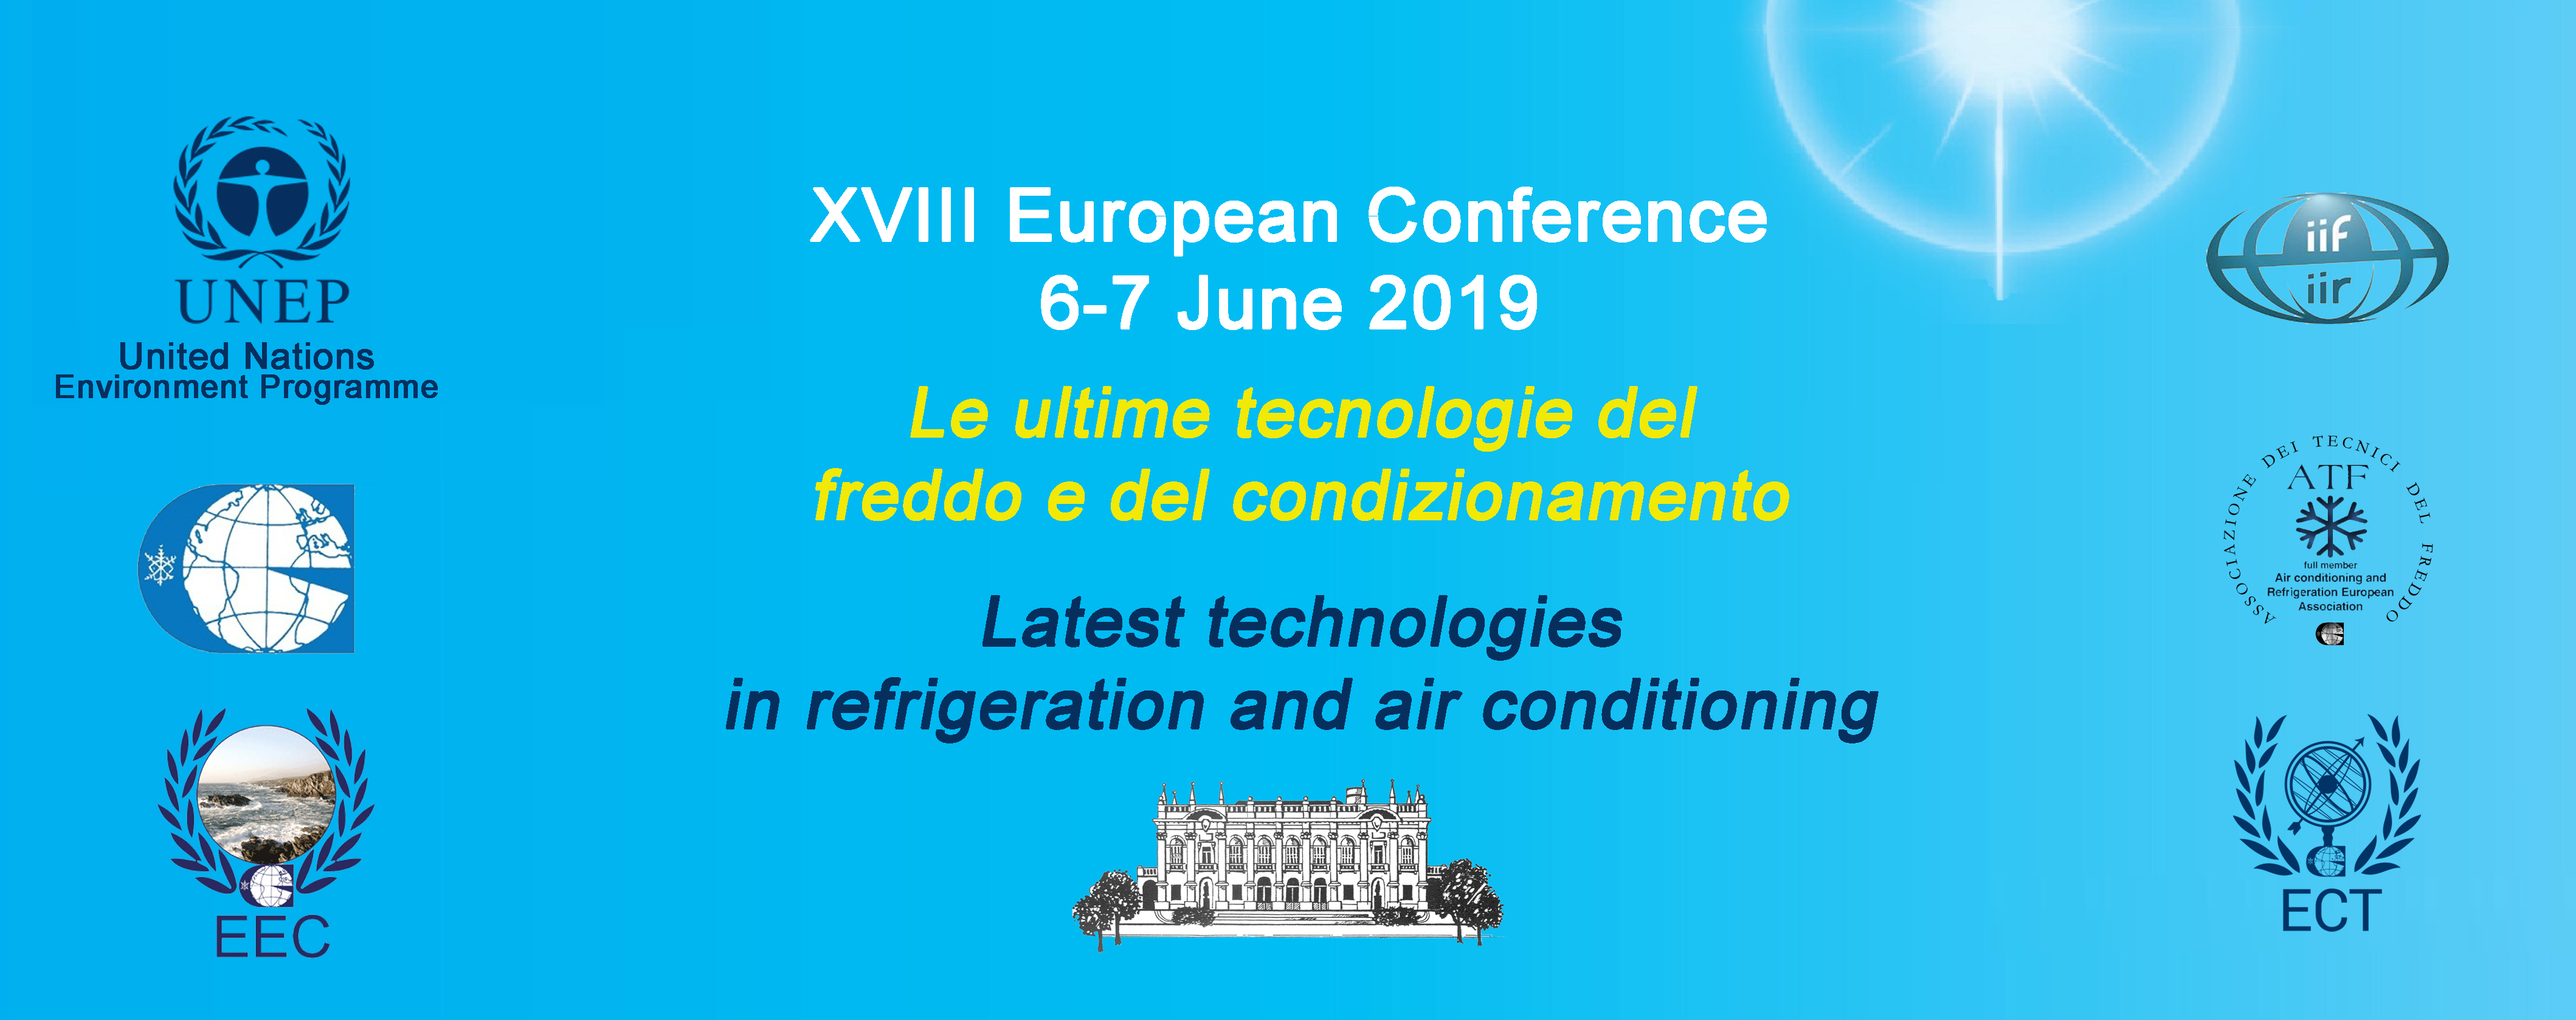 18th European Conference Poster